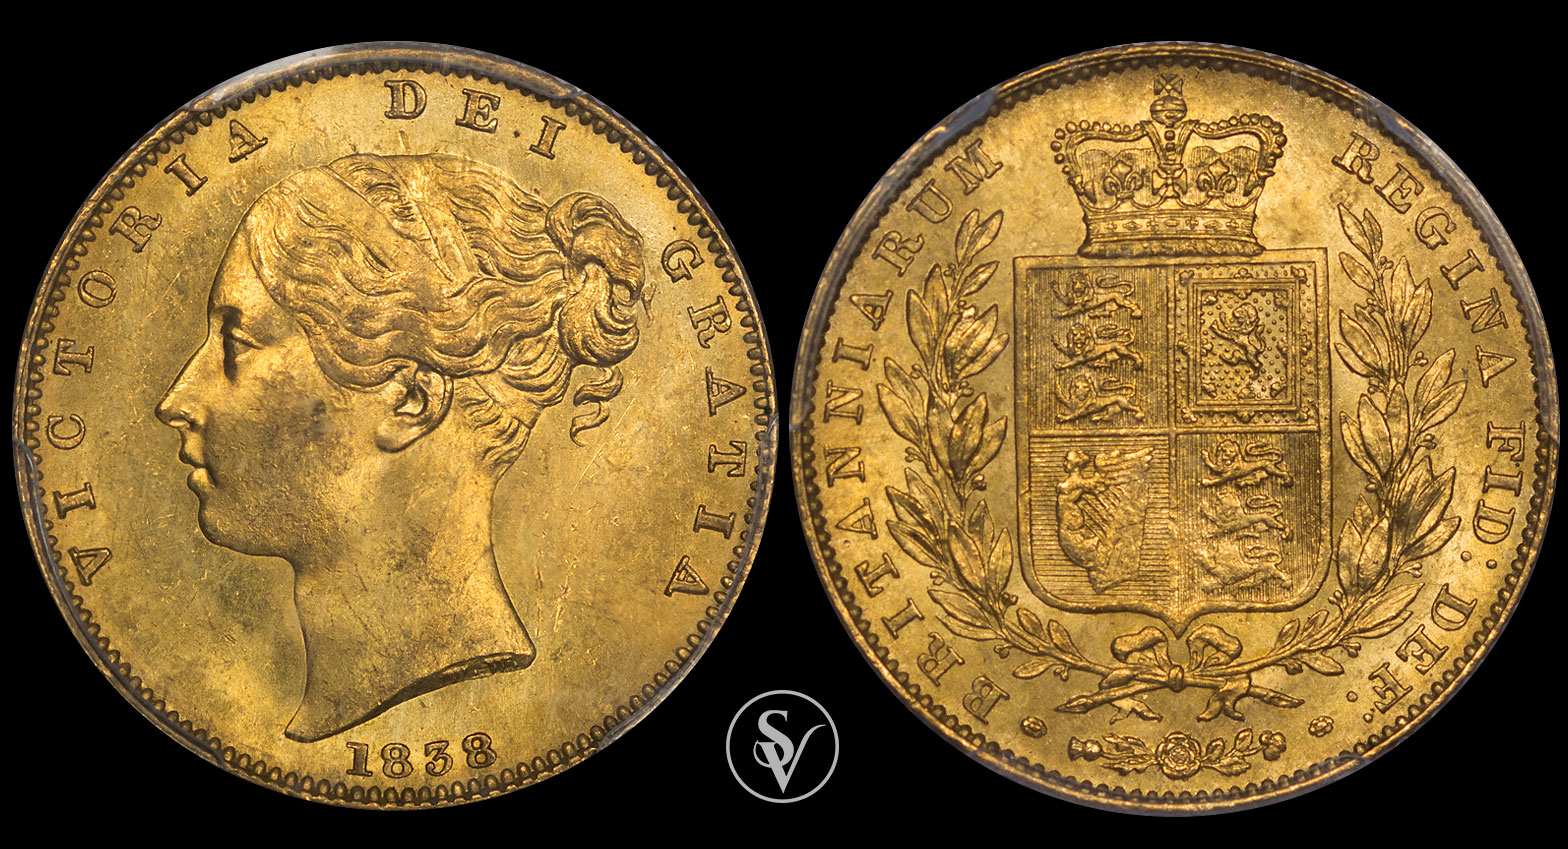 1838 Victoria gold sovereign shield